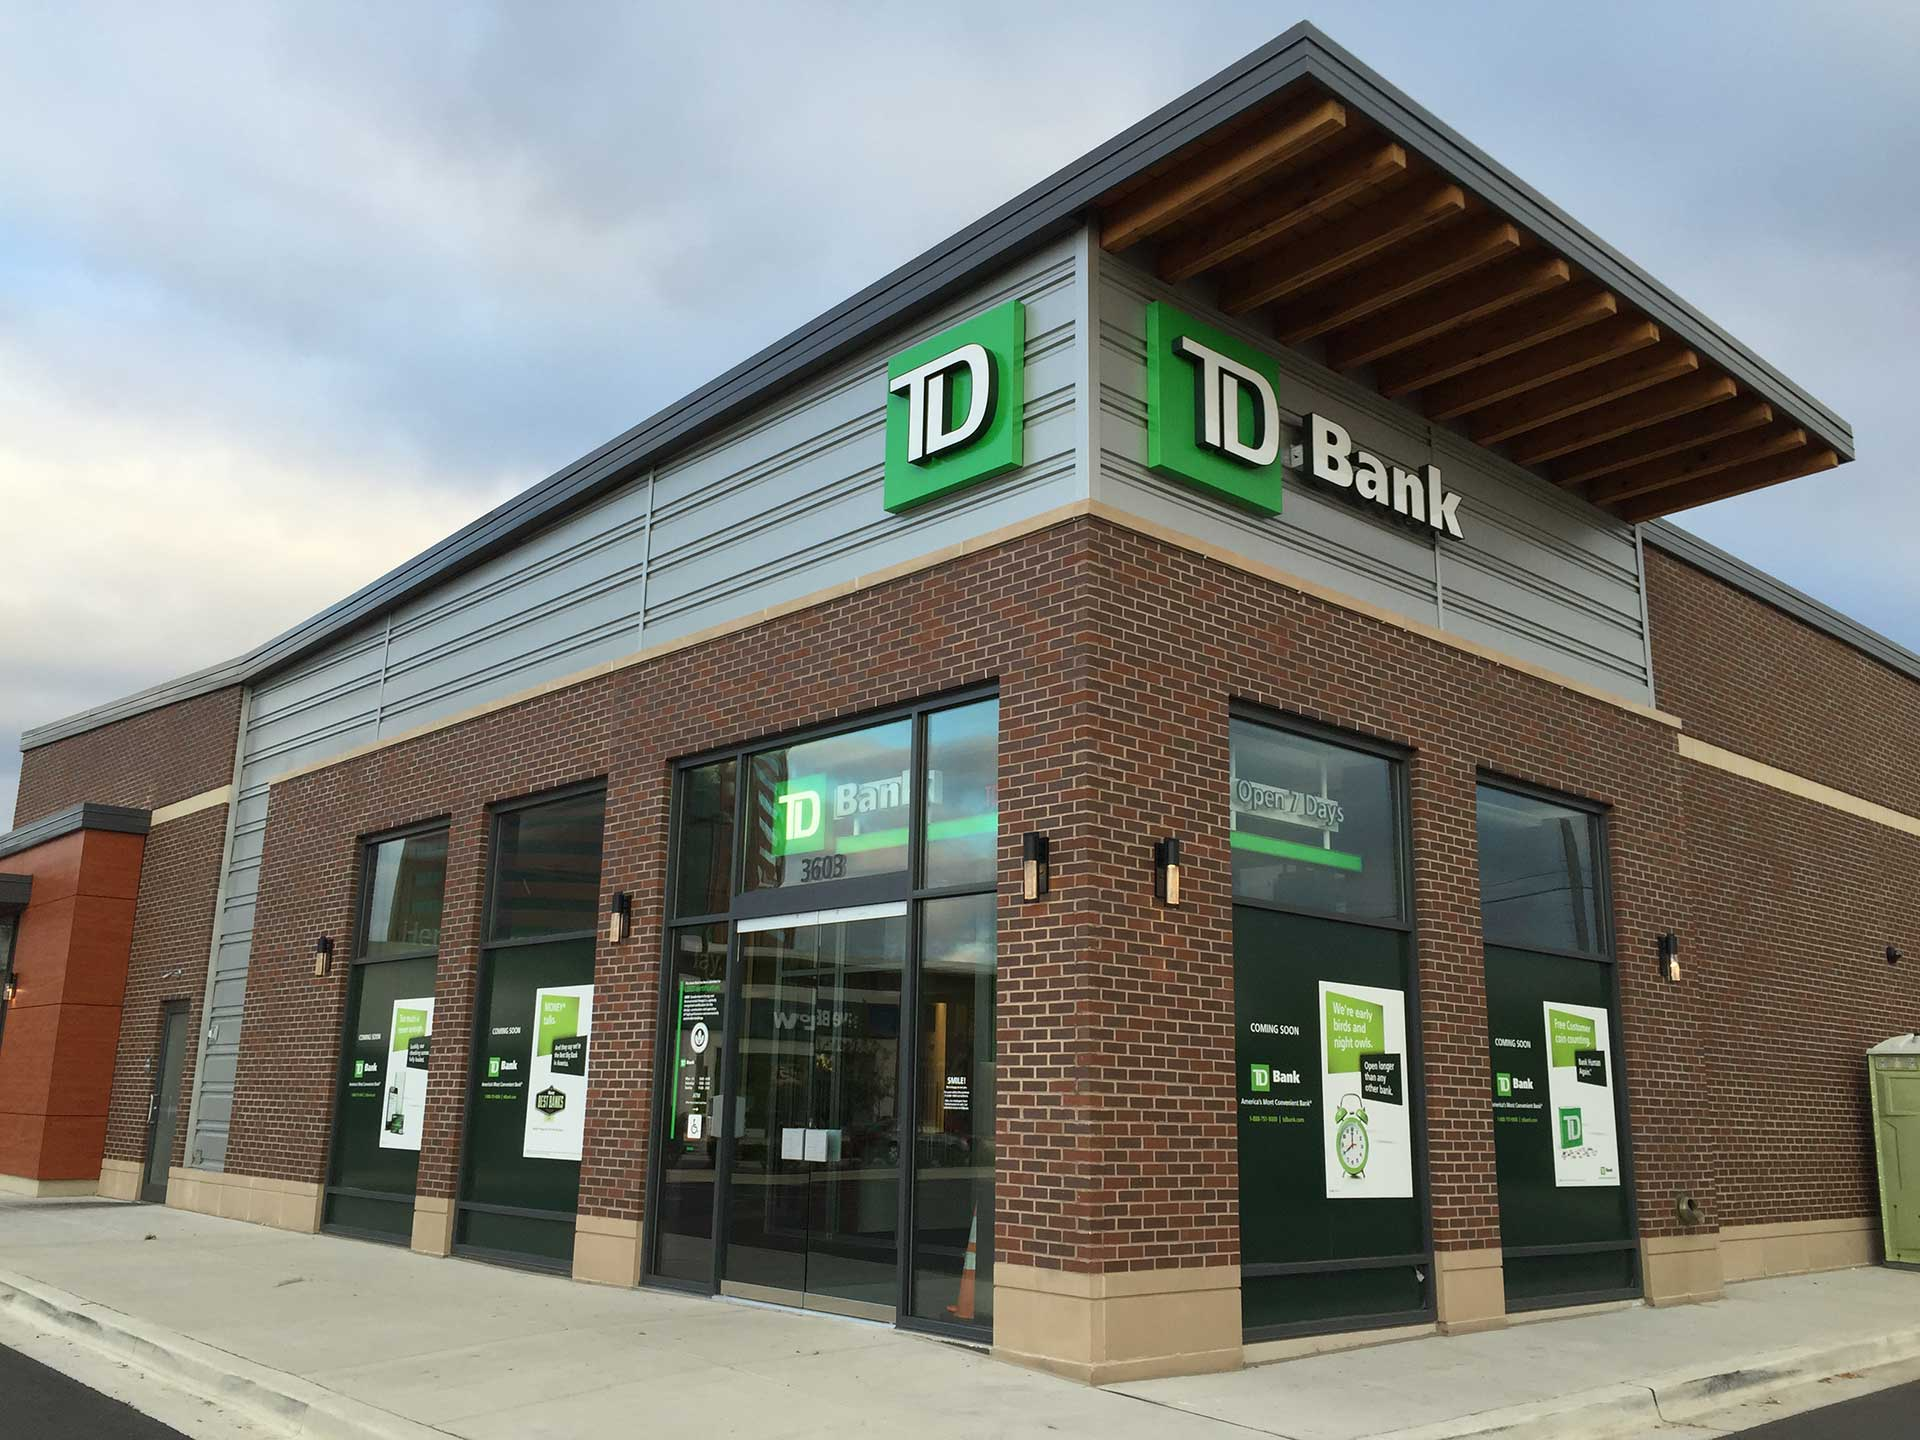 wp-content/uploads/2013/11/TDBank-White.png   Canton Crossing